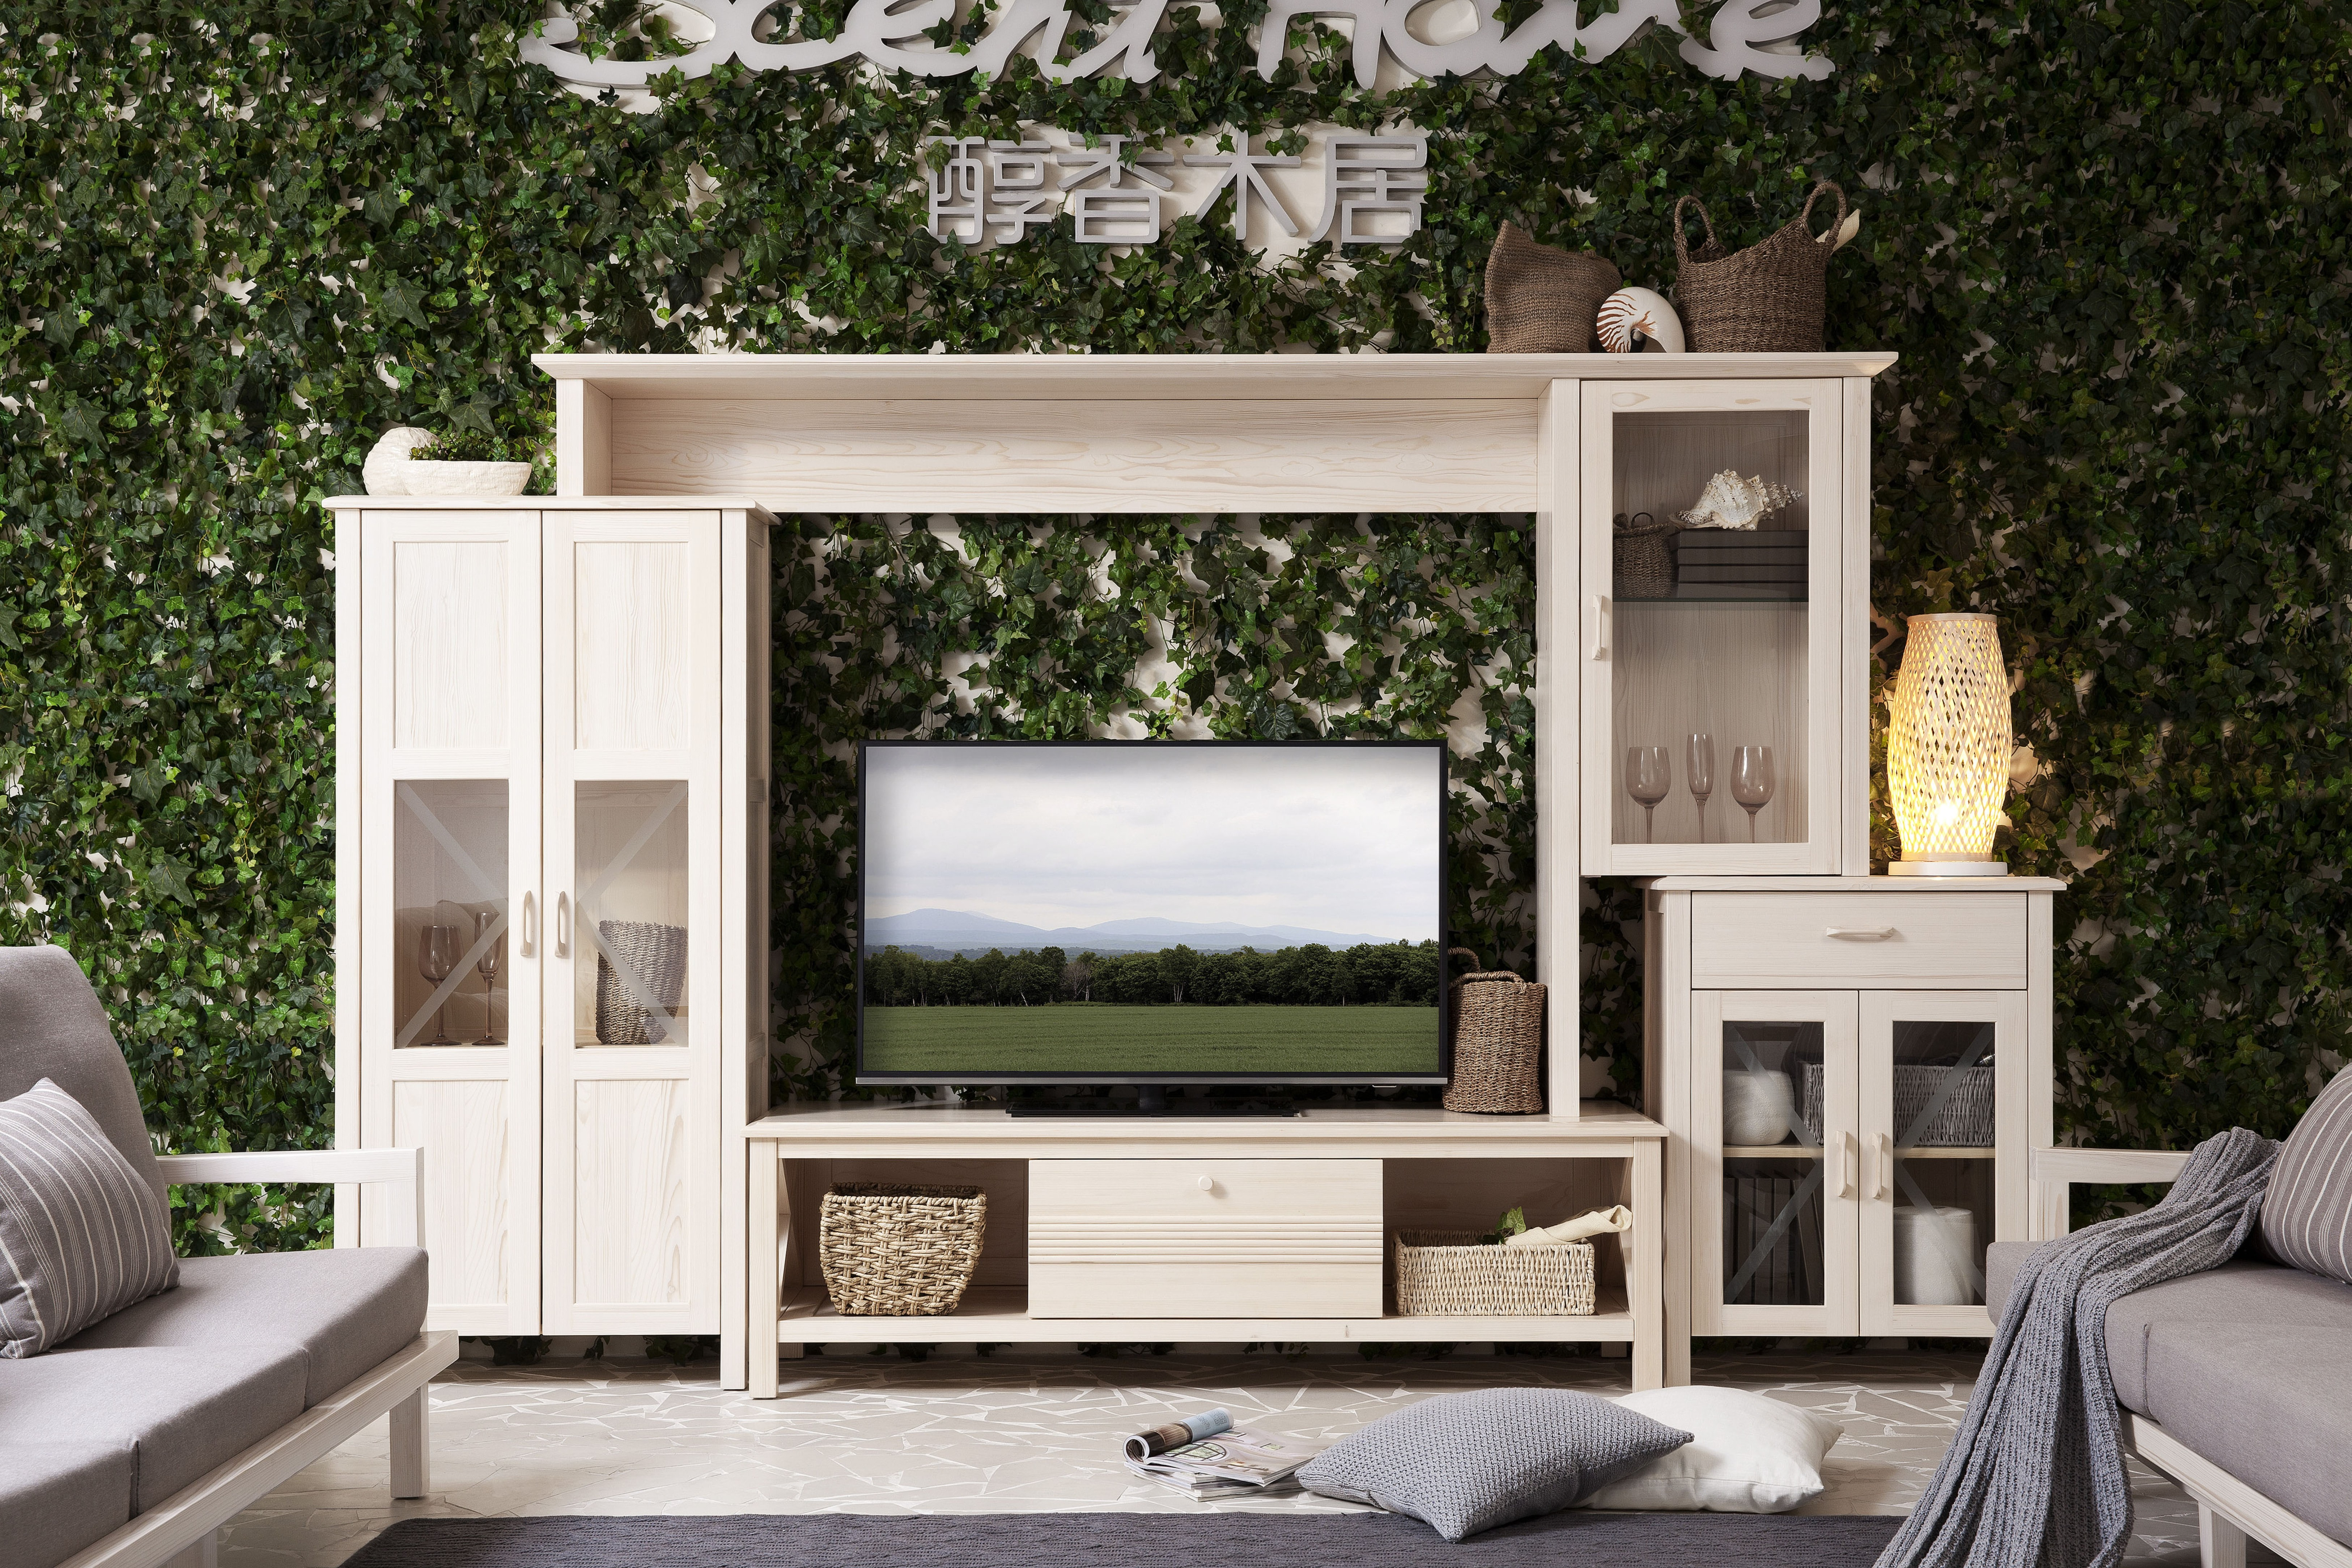 turned on TV on white wooden TV hutch near sofas